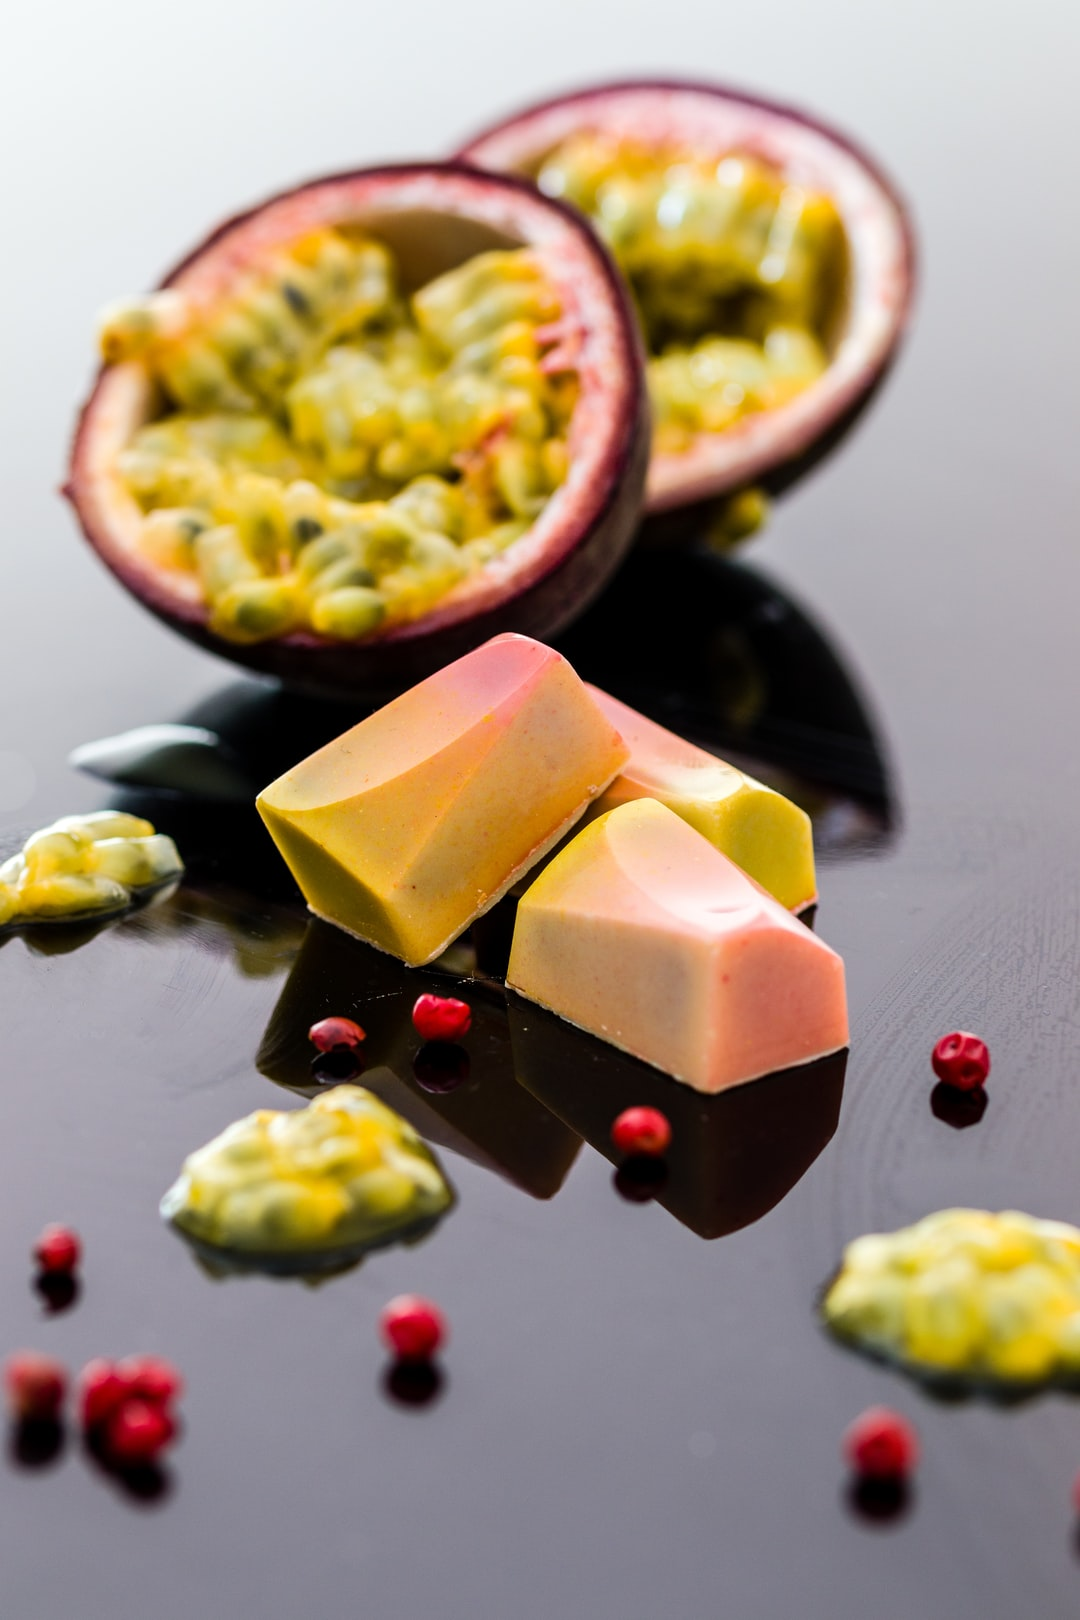 Passion fruit and pink pepper bonbons